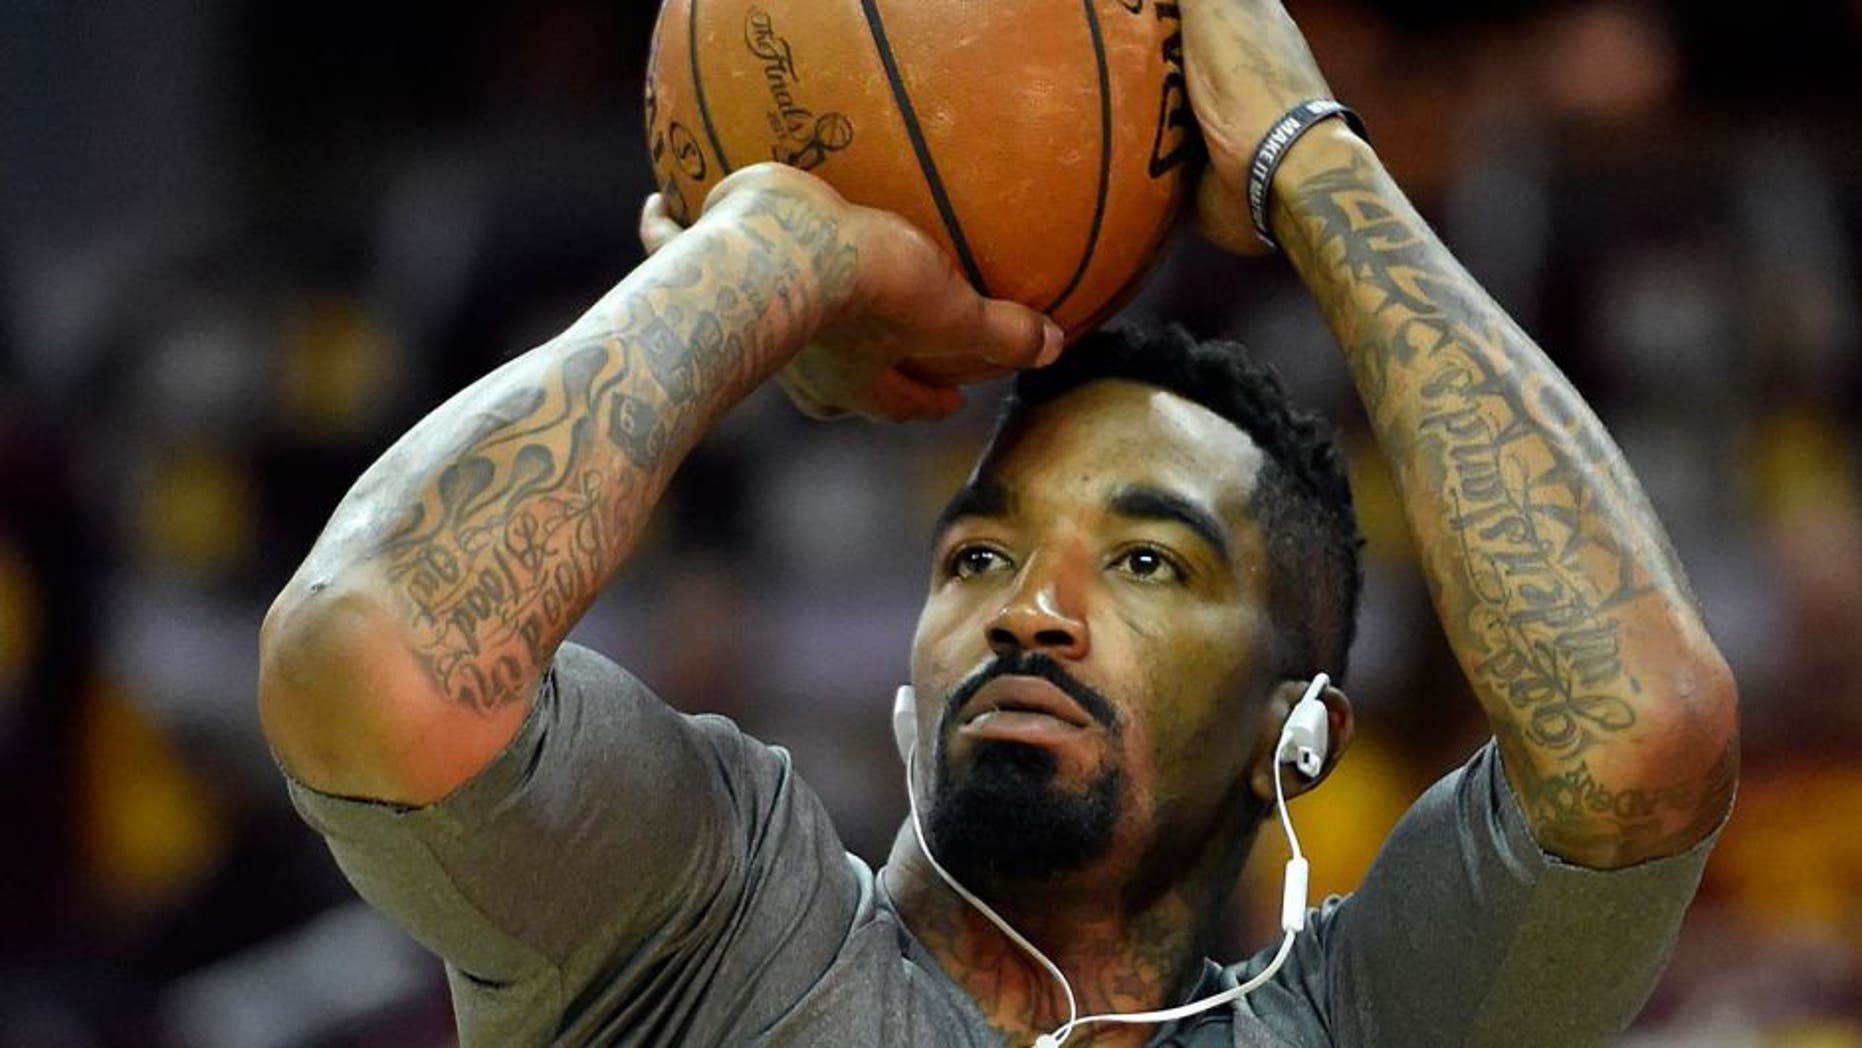 uJun 9, 2015; Cleveland, OH, USA; Cleveland Cavaliers guard J.R. Smith (5) warms up before game three of the NBA Finals against the Golden State Warriors at Quicken Loans Arena. Mandatory Credit: Bob Donnan-USA TODAY Sports